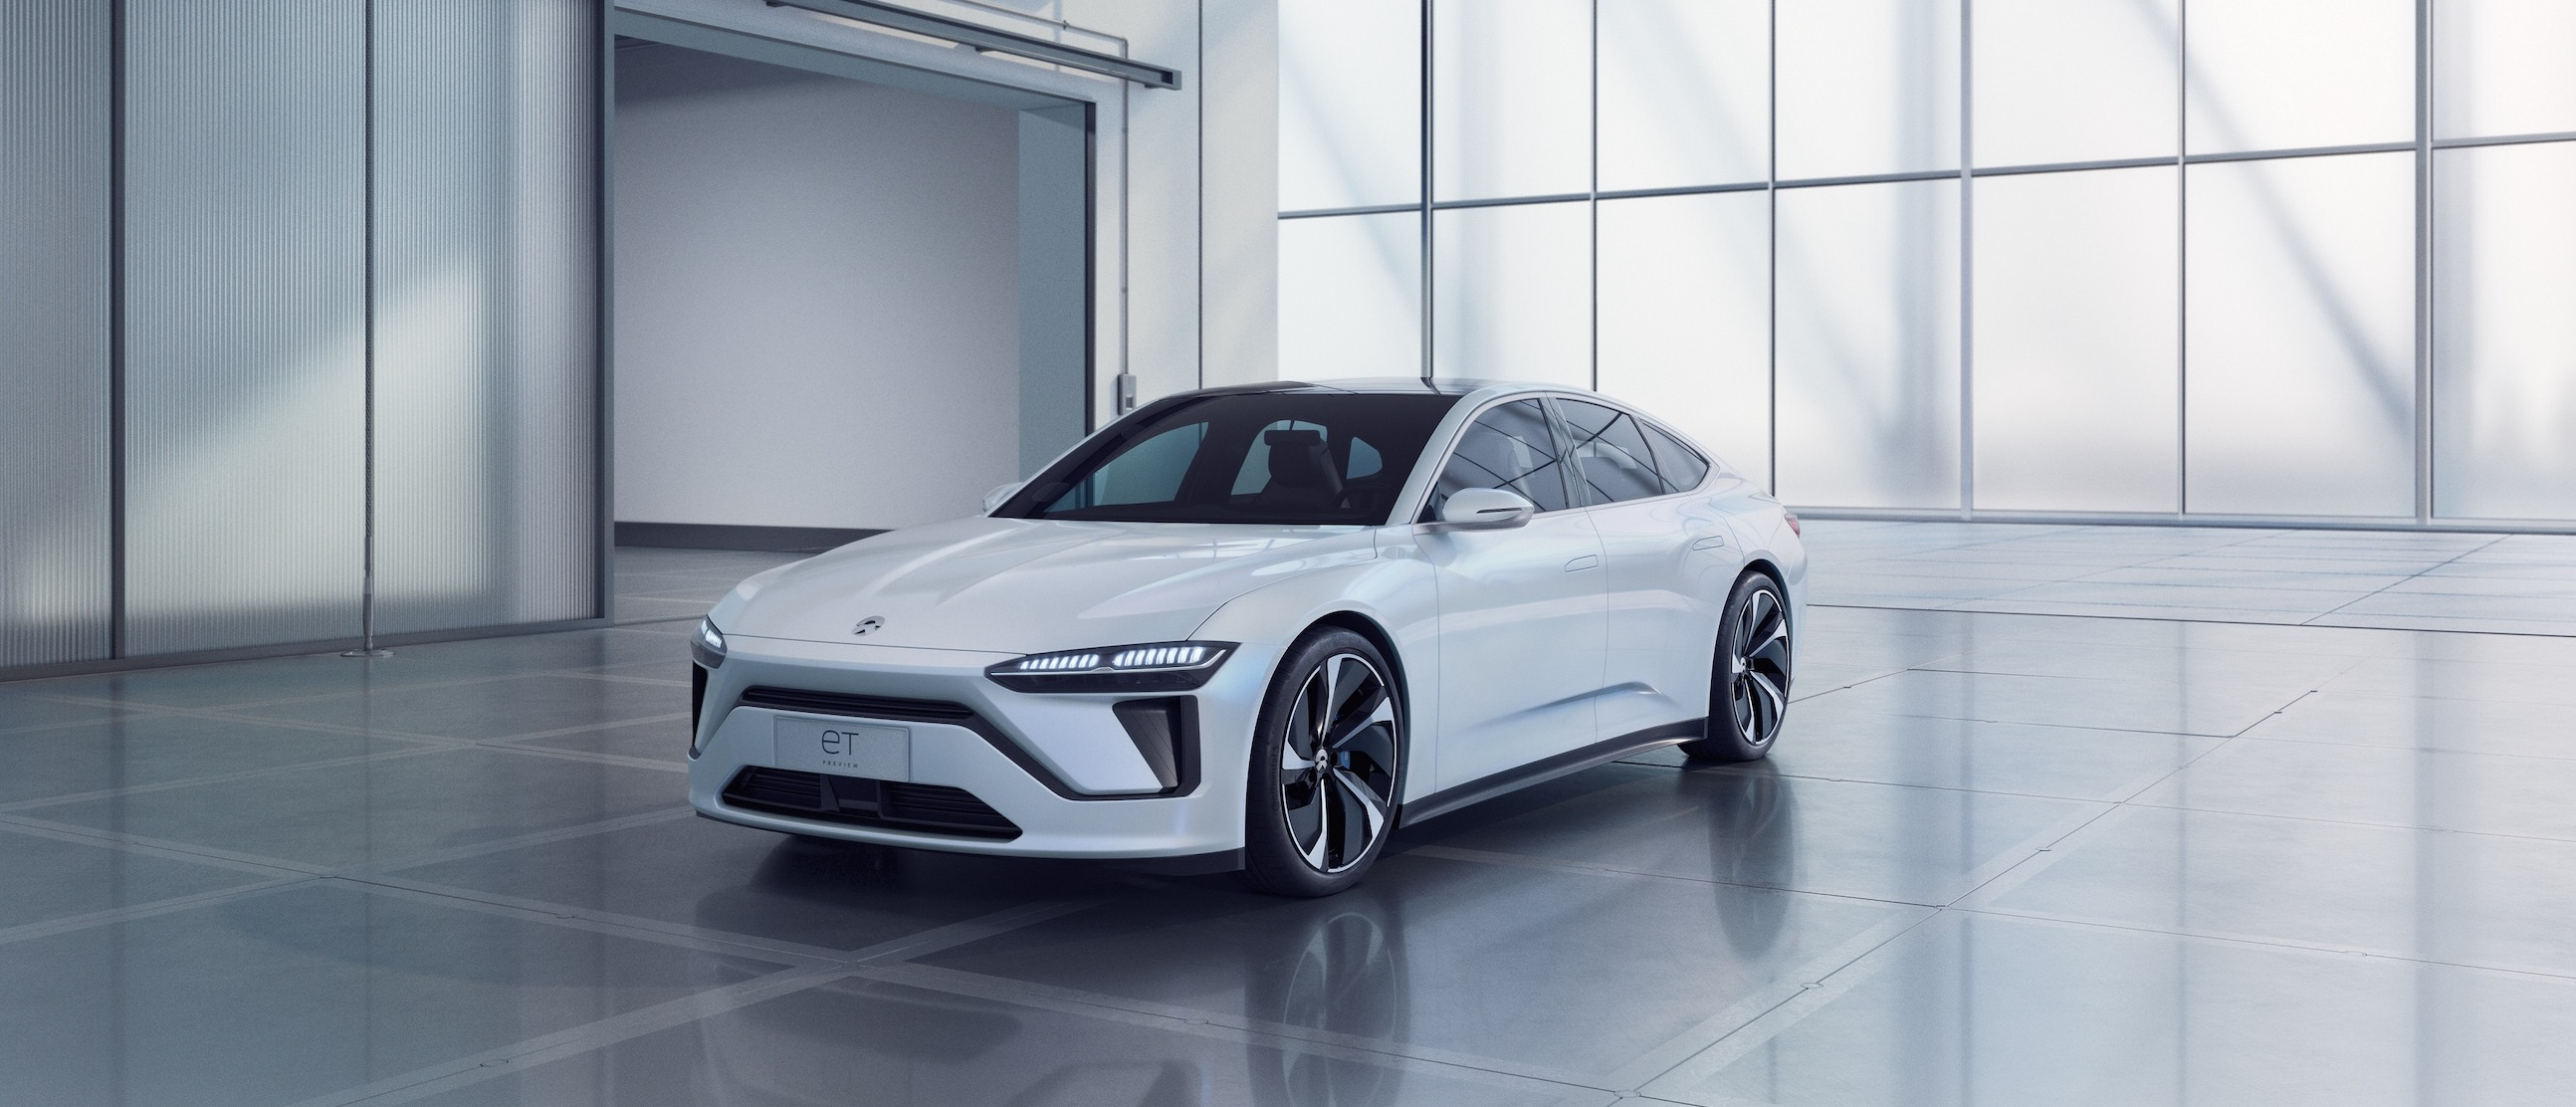 Nio Unveils New All Electric Sedan And Fast Charging Station